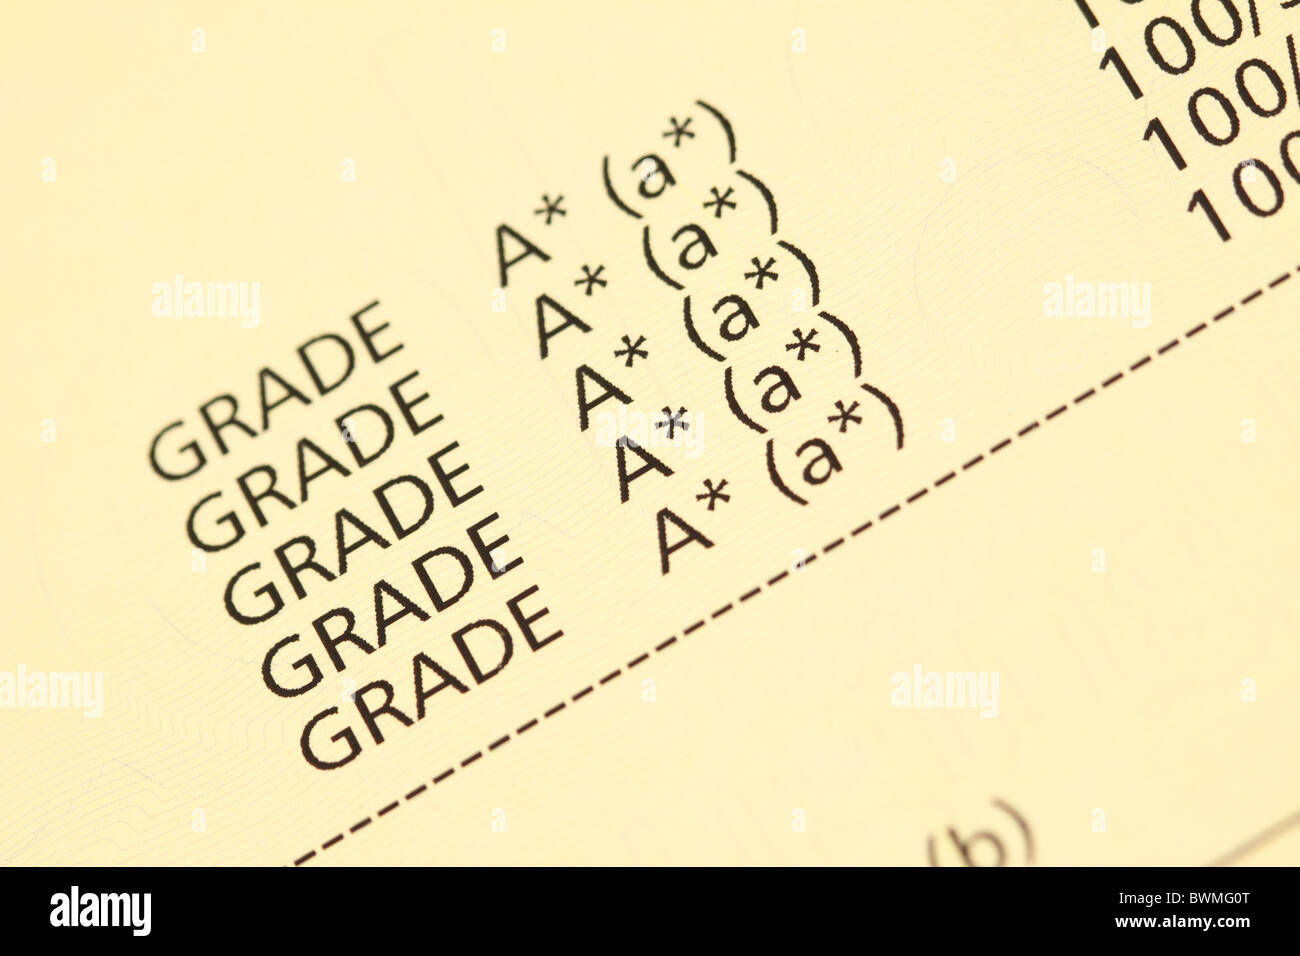 Exam certificate Grade A star A* GCSE result mark - Stock Image